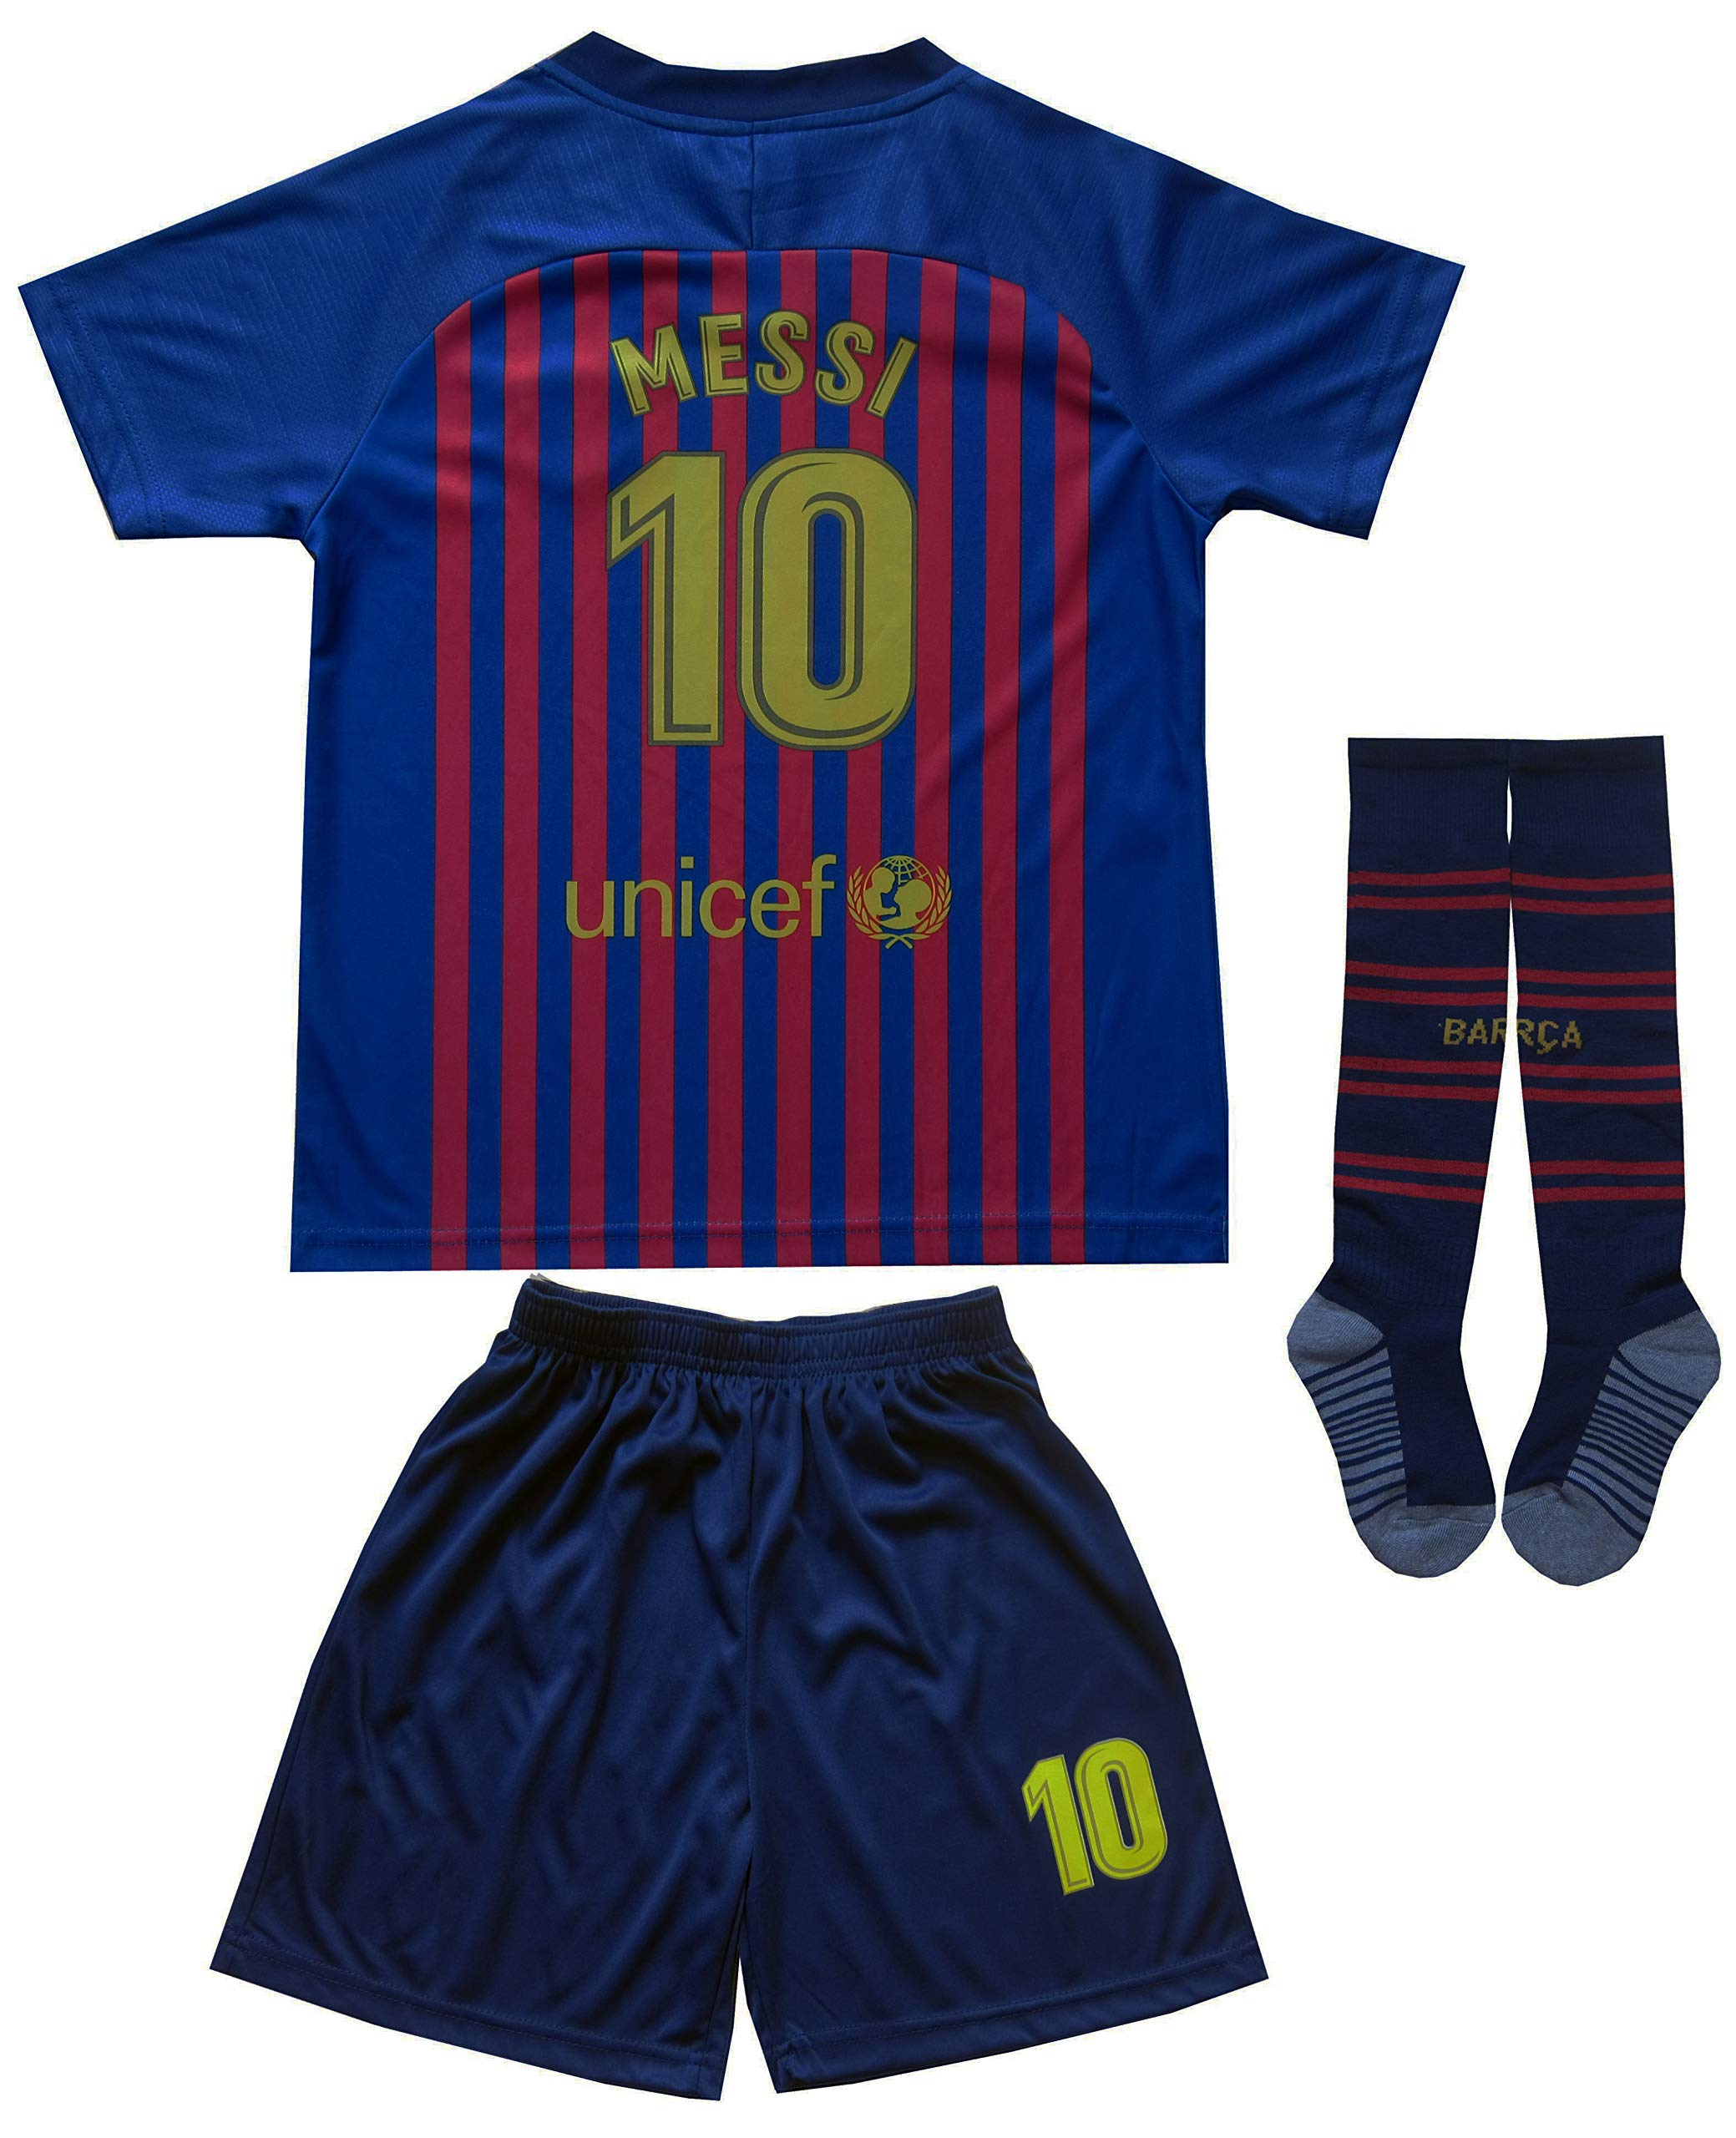 Da Games Youth Sportswear Barcelona Messi 10 Kids Home Soccer Jersey/Shorts Football Socks Set (10-11 YEARS OLD, Home)